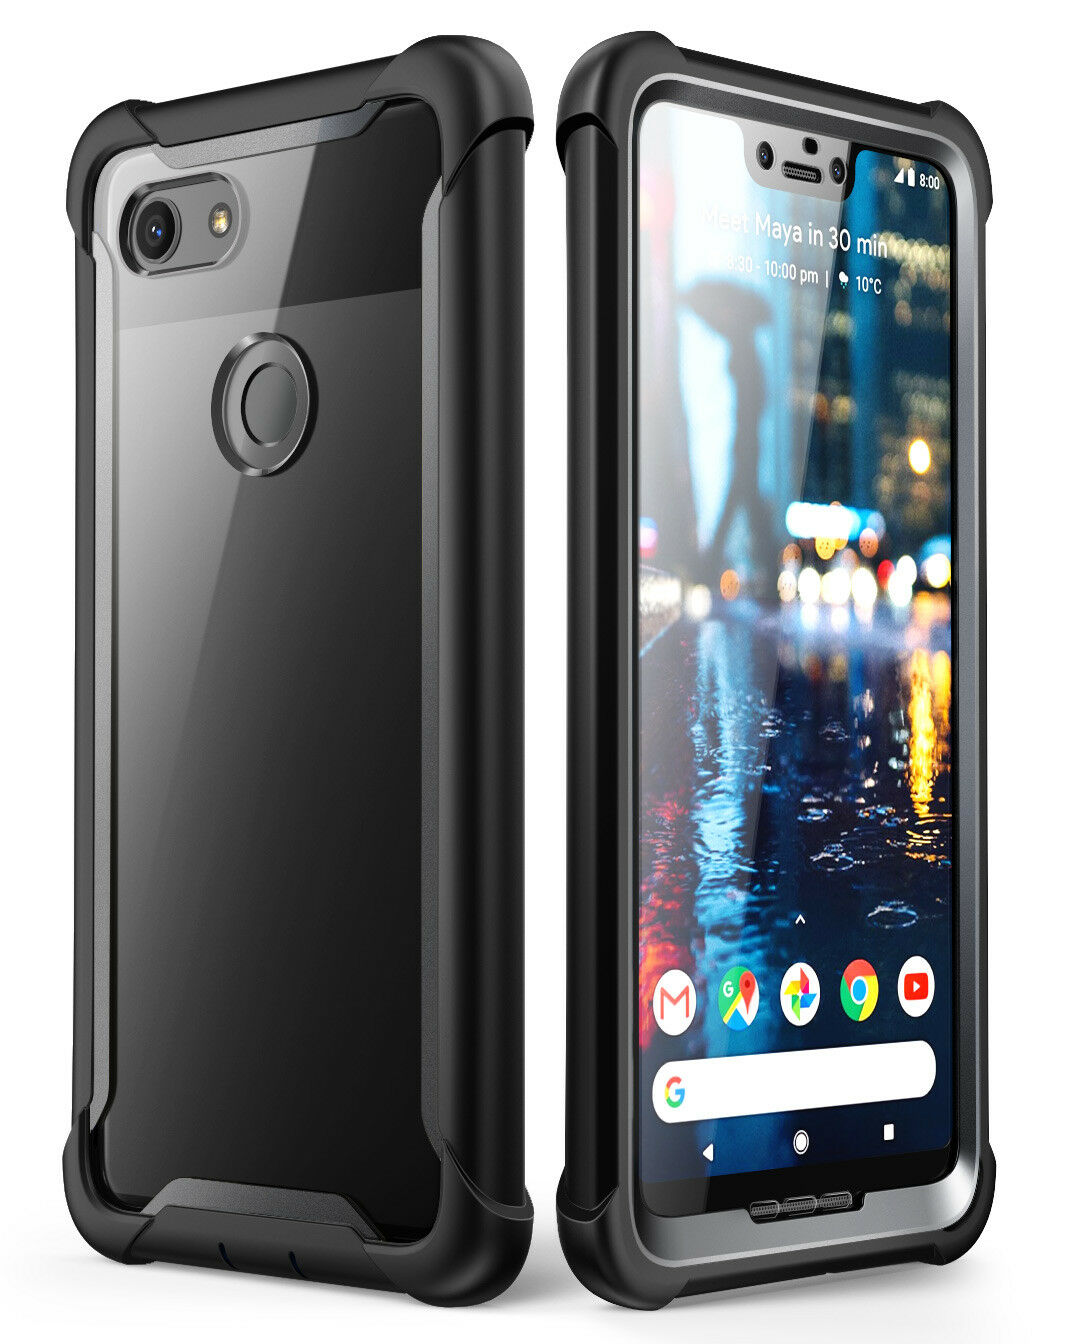 Details about For Google Pixel 3XL Case i-Blason [Ares] Full-Body Cover  with Screen Protector